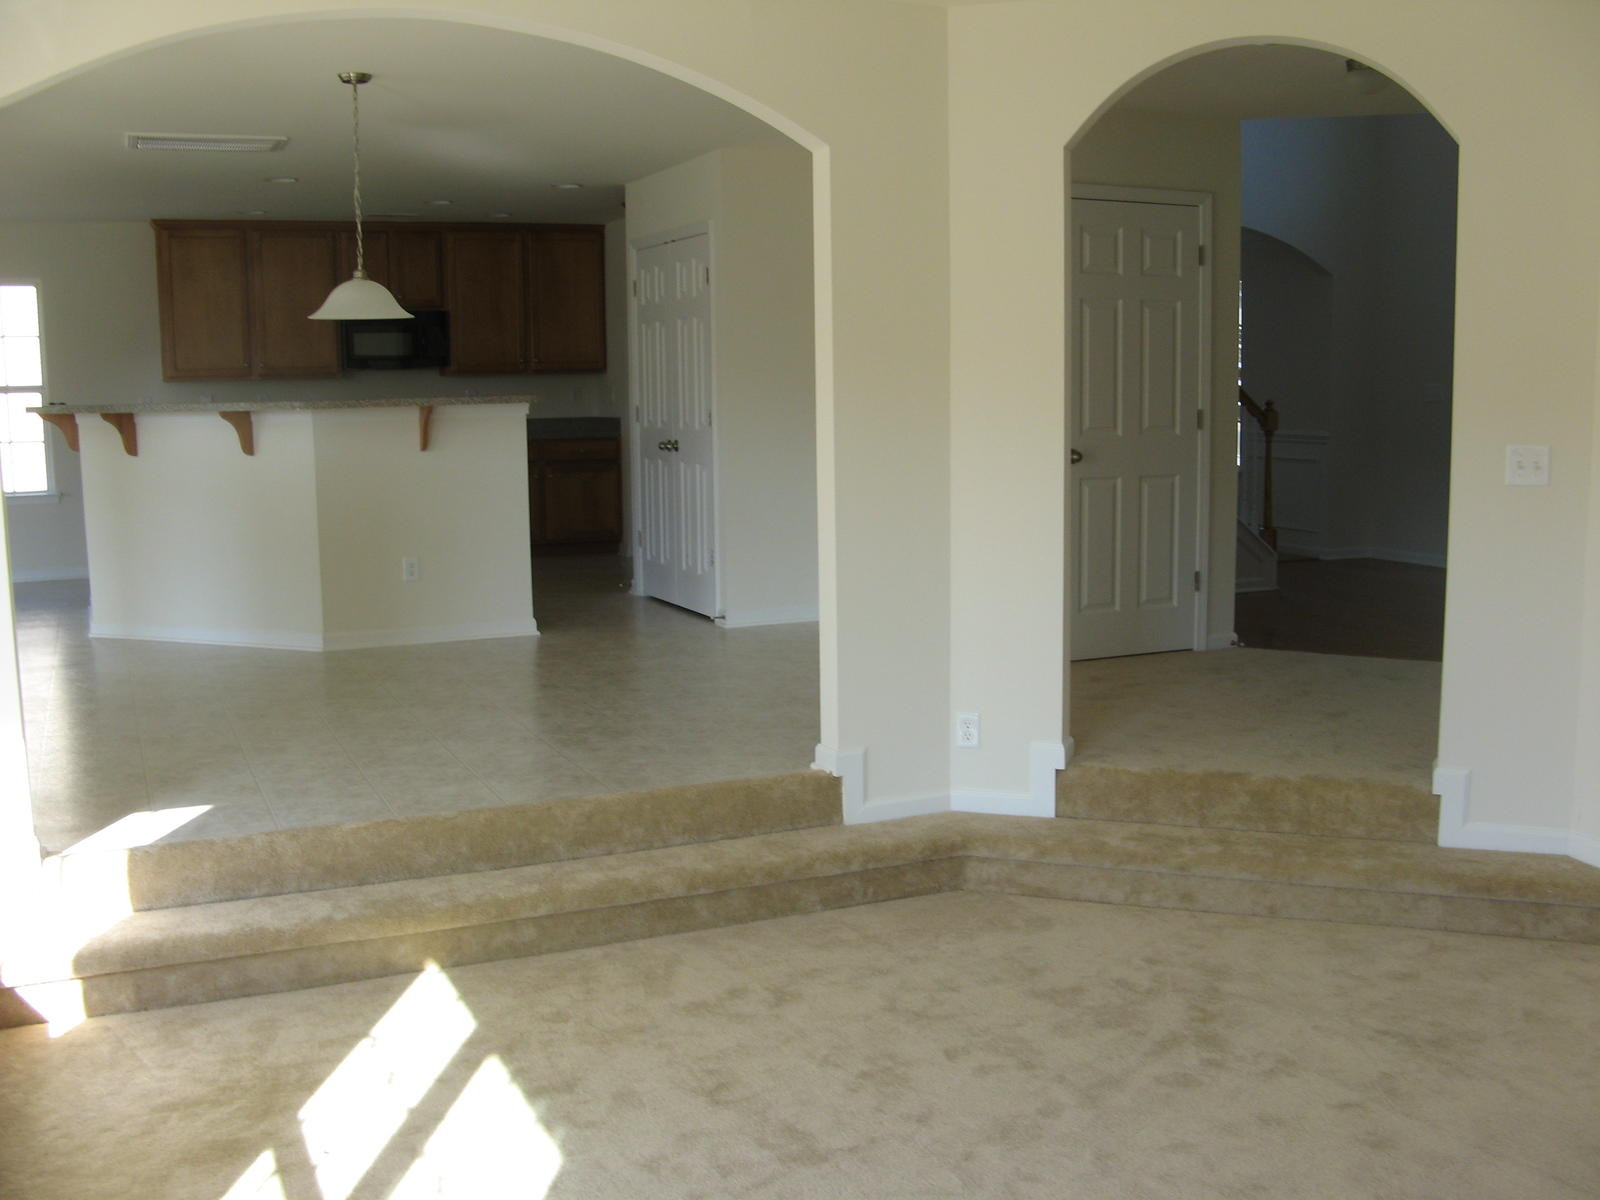 Best ideas about Floor Paint Colors . Save or Pin Paint open first floor can I paint different Now.